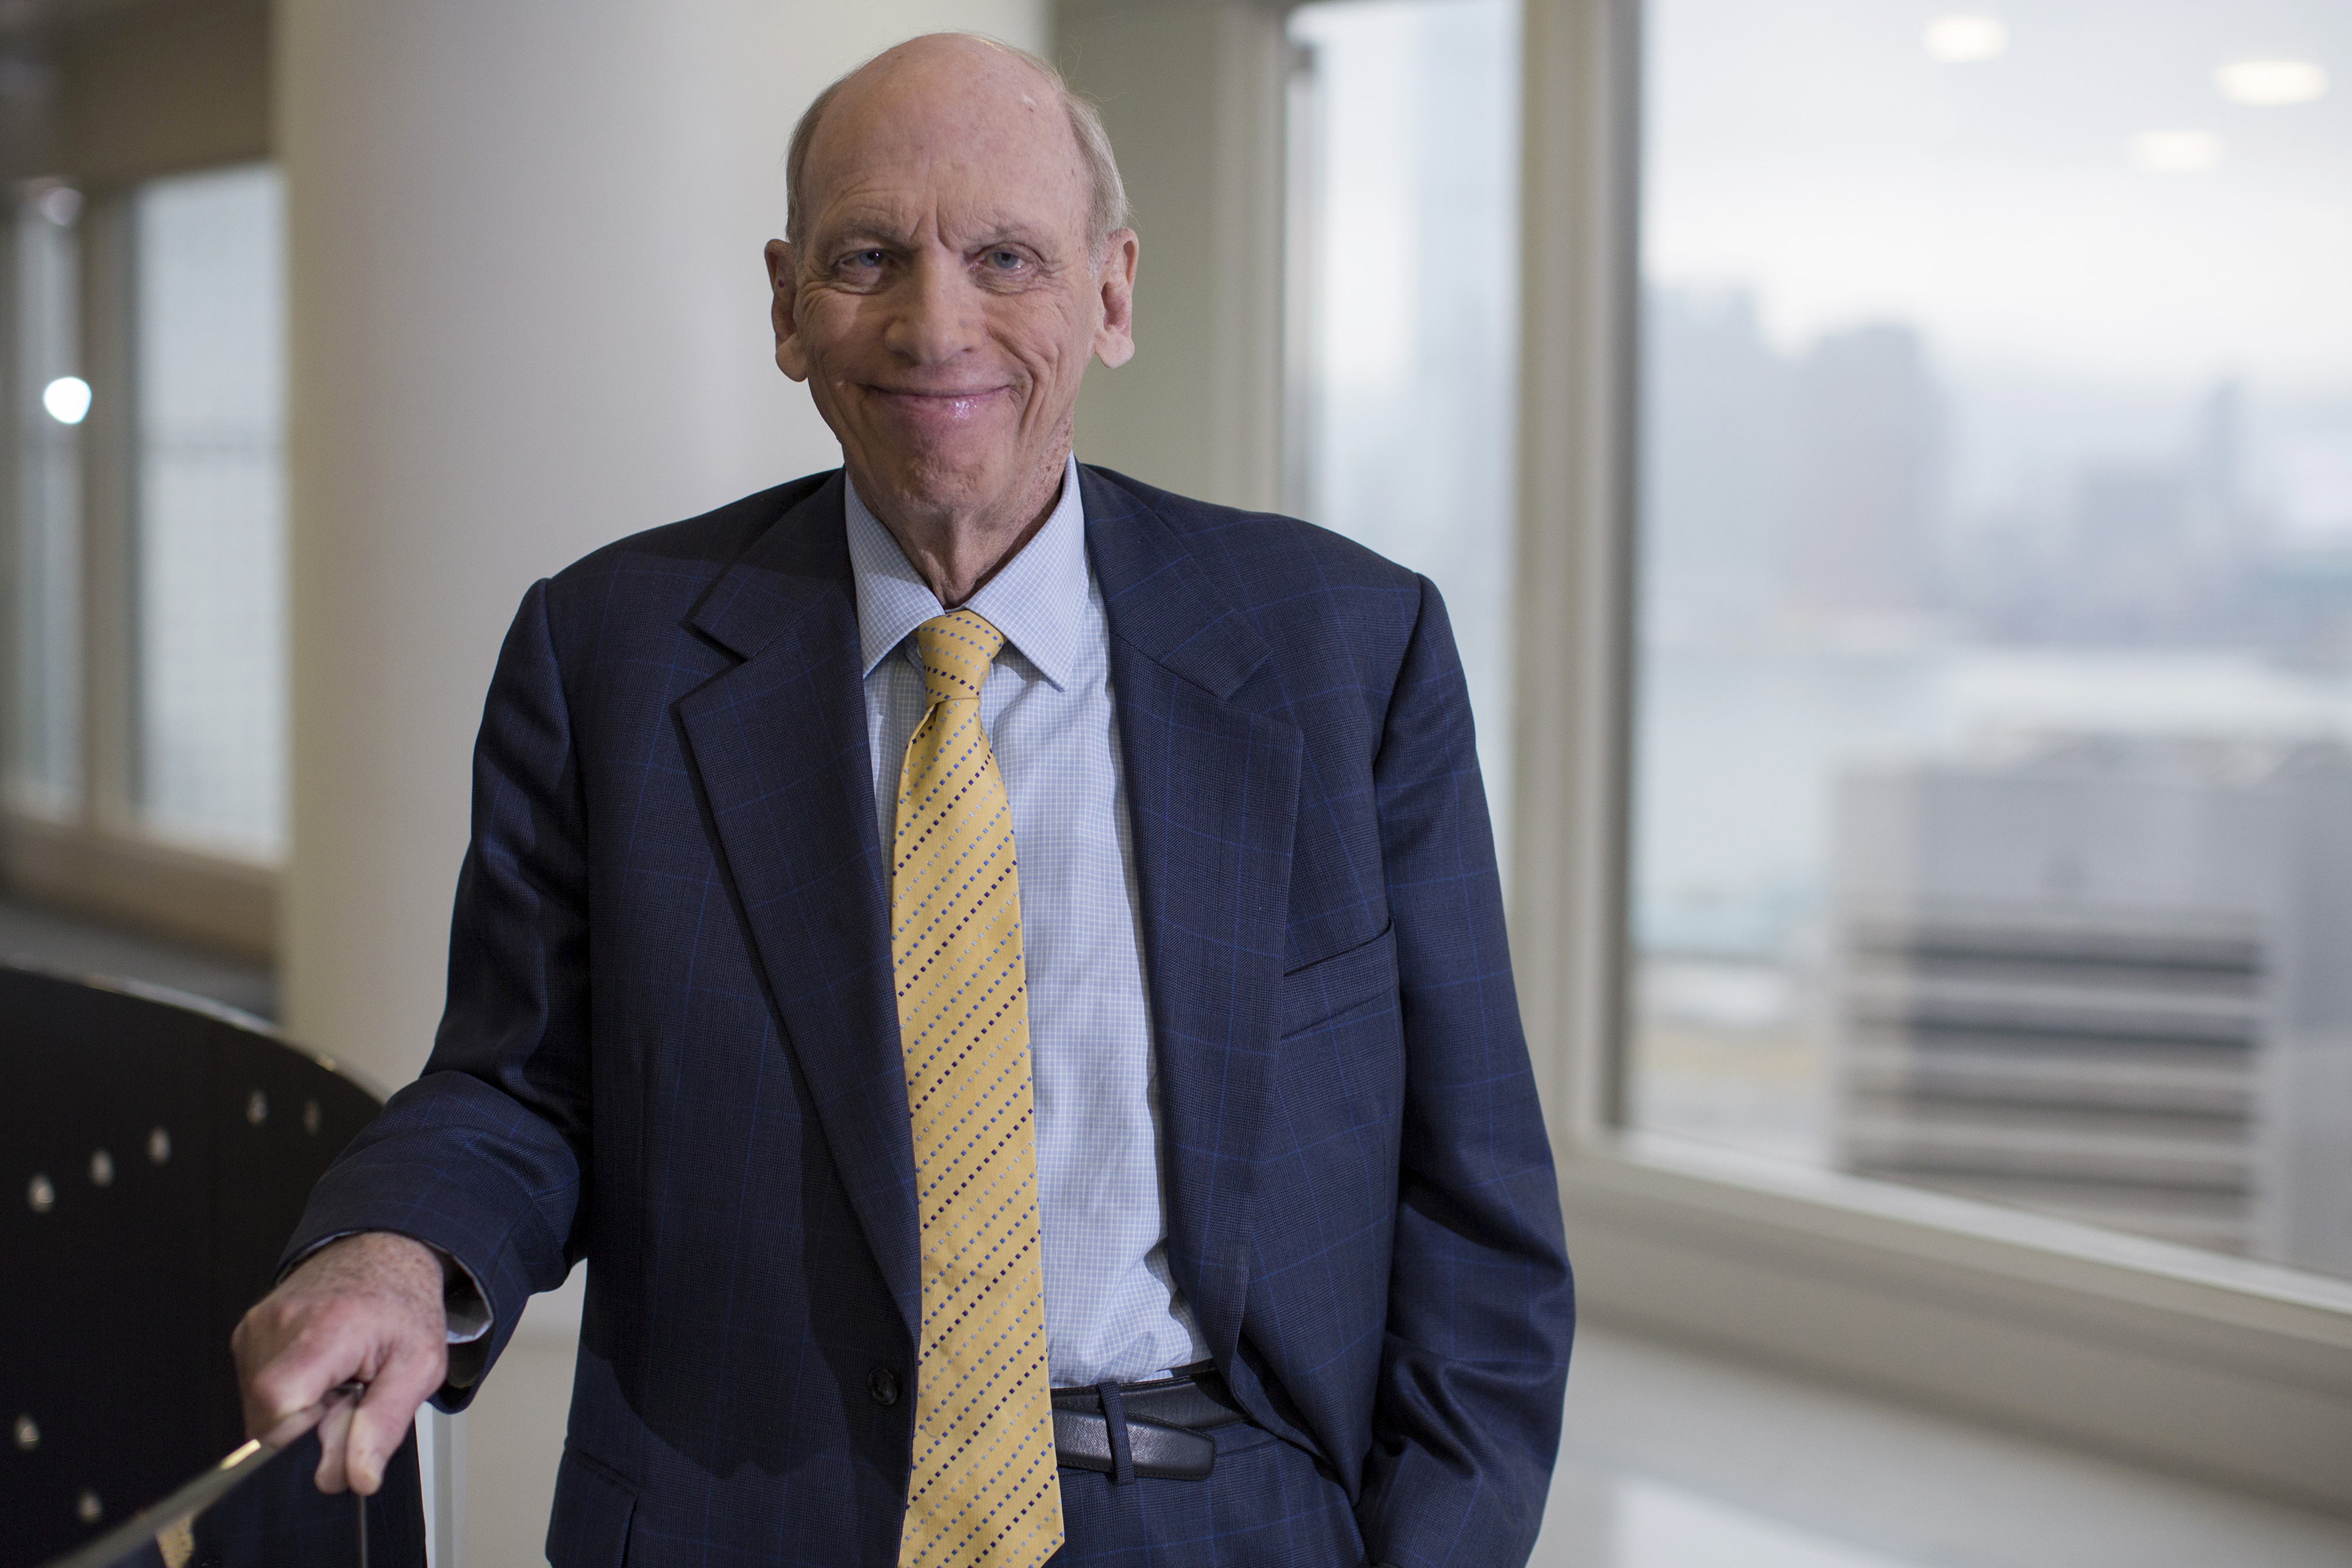 Blackstone Group Vice Chairman Byron Wien Interview